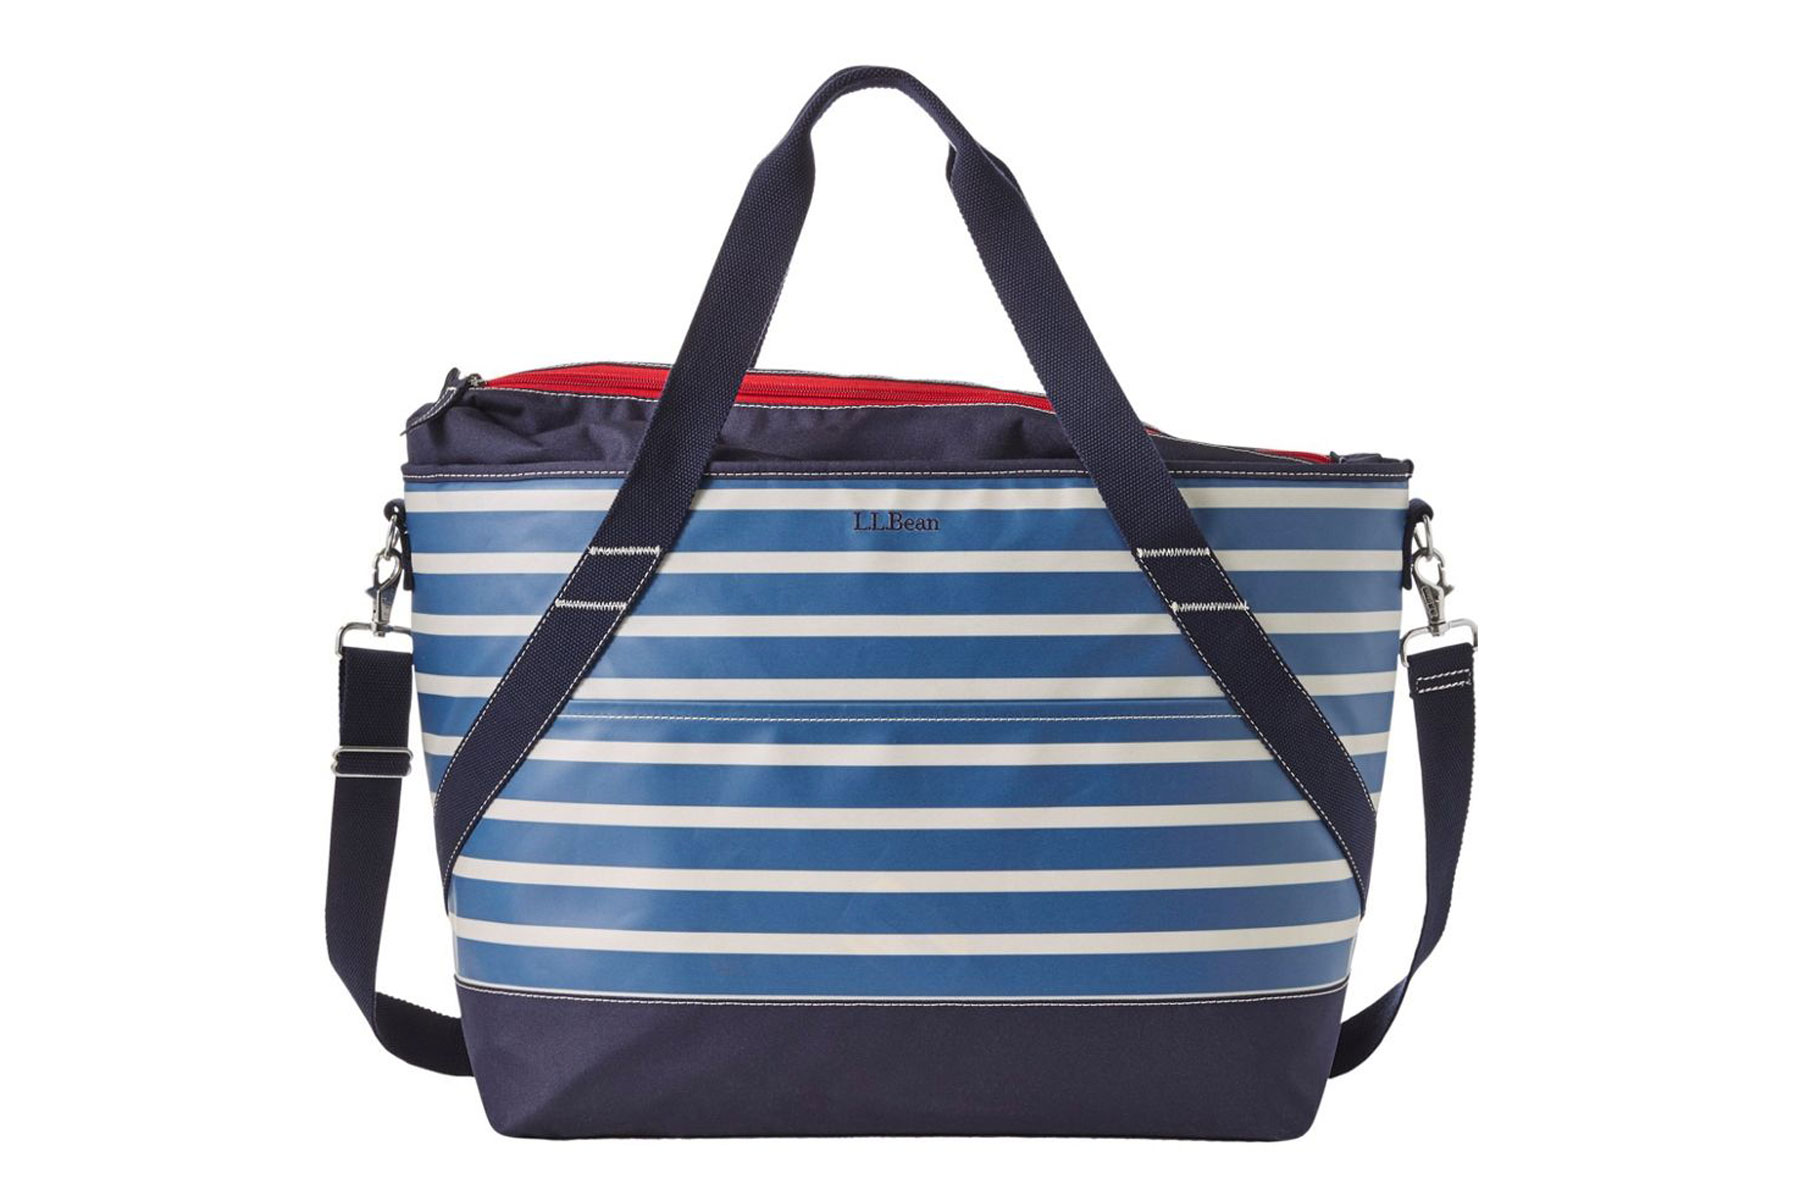 For beach picnics, an insulated tote that will keep your food nice and cool is an absolute must.To buy: llbean.com, $79